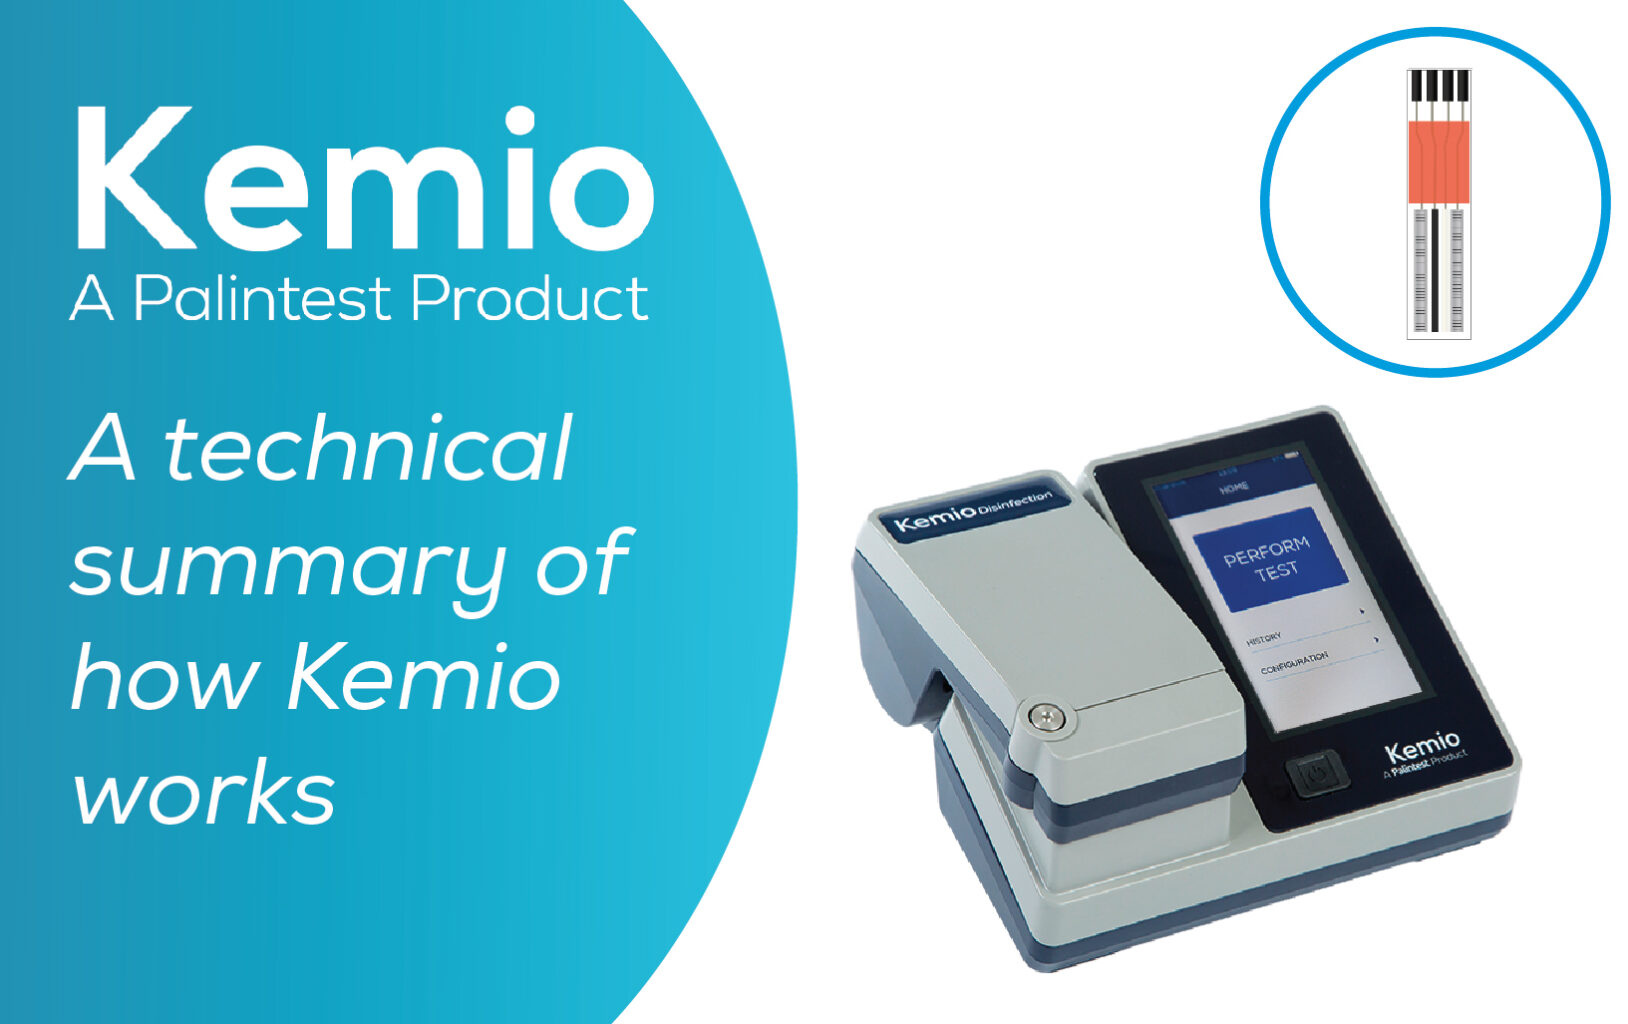 How Does Kemio™ Work? The Technical Summary